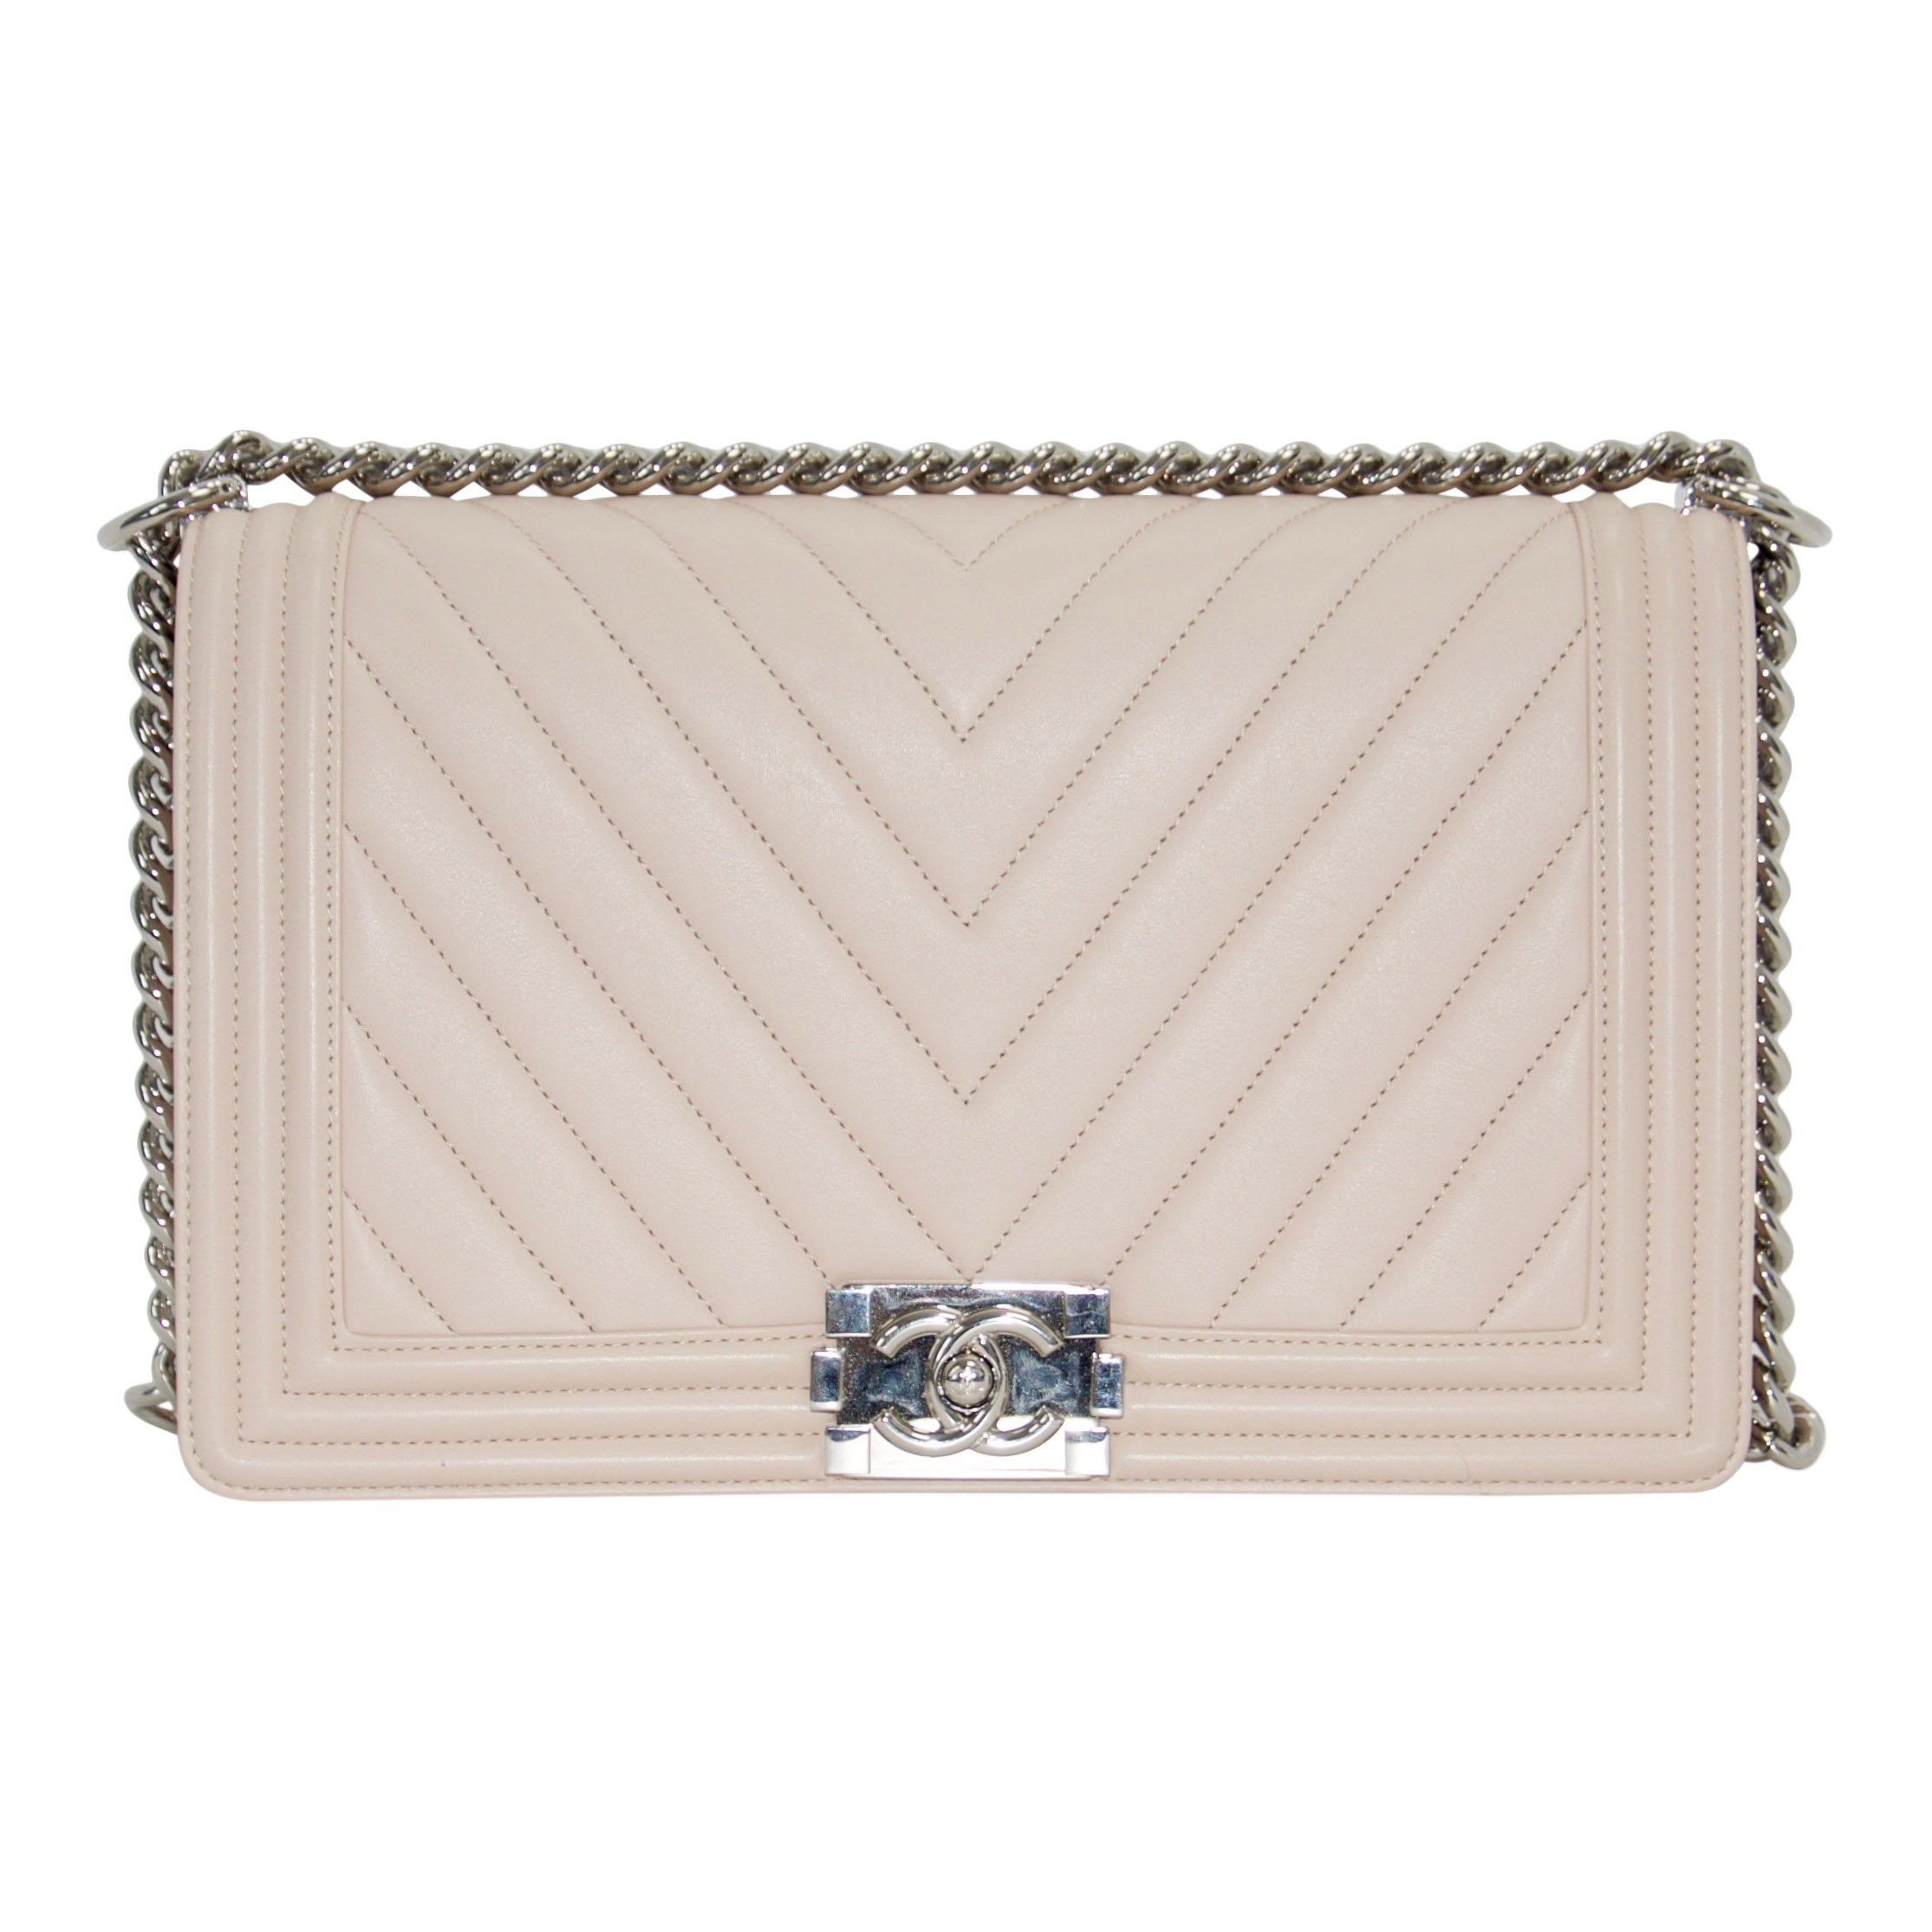 d51fc7207a80 Chanel Medium Plus Chevron Boy Bag– Oliver Jewellery